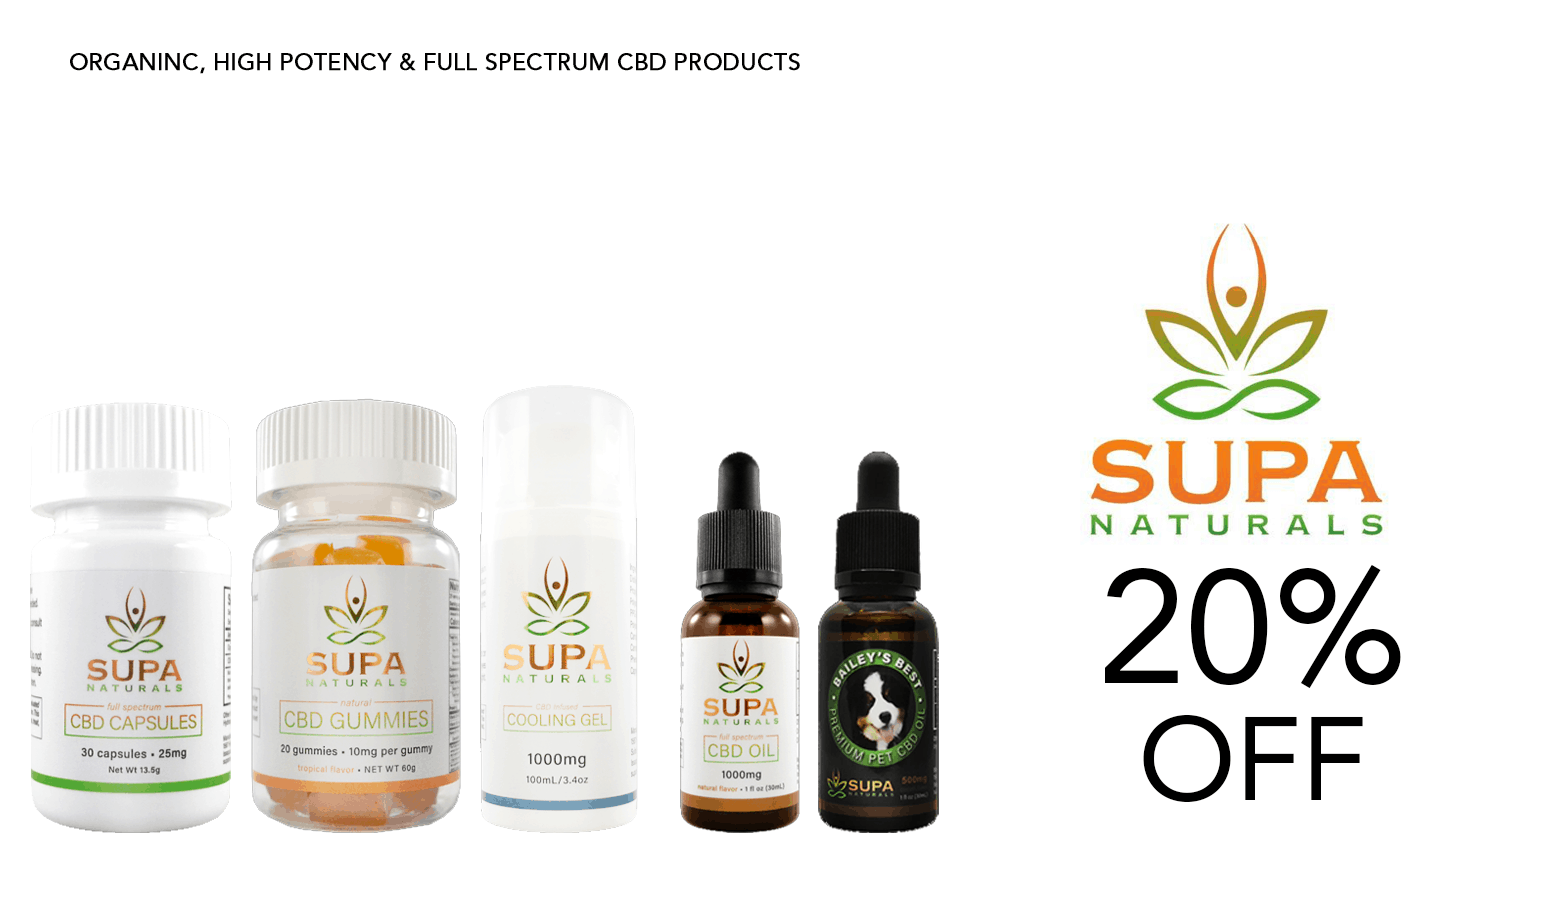 Supa Naturals CBD Coupon Code Offer Website